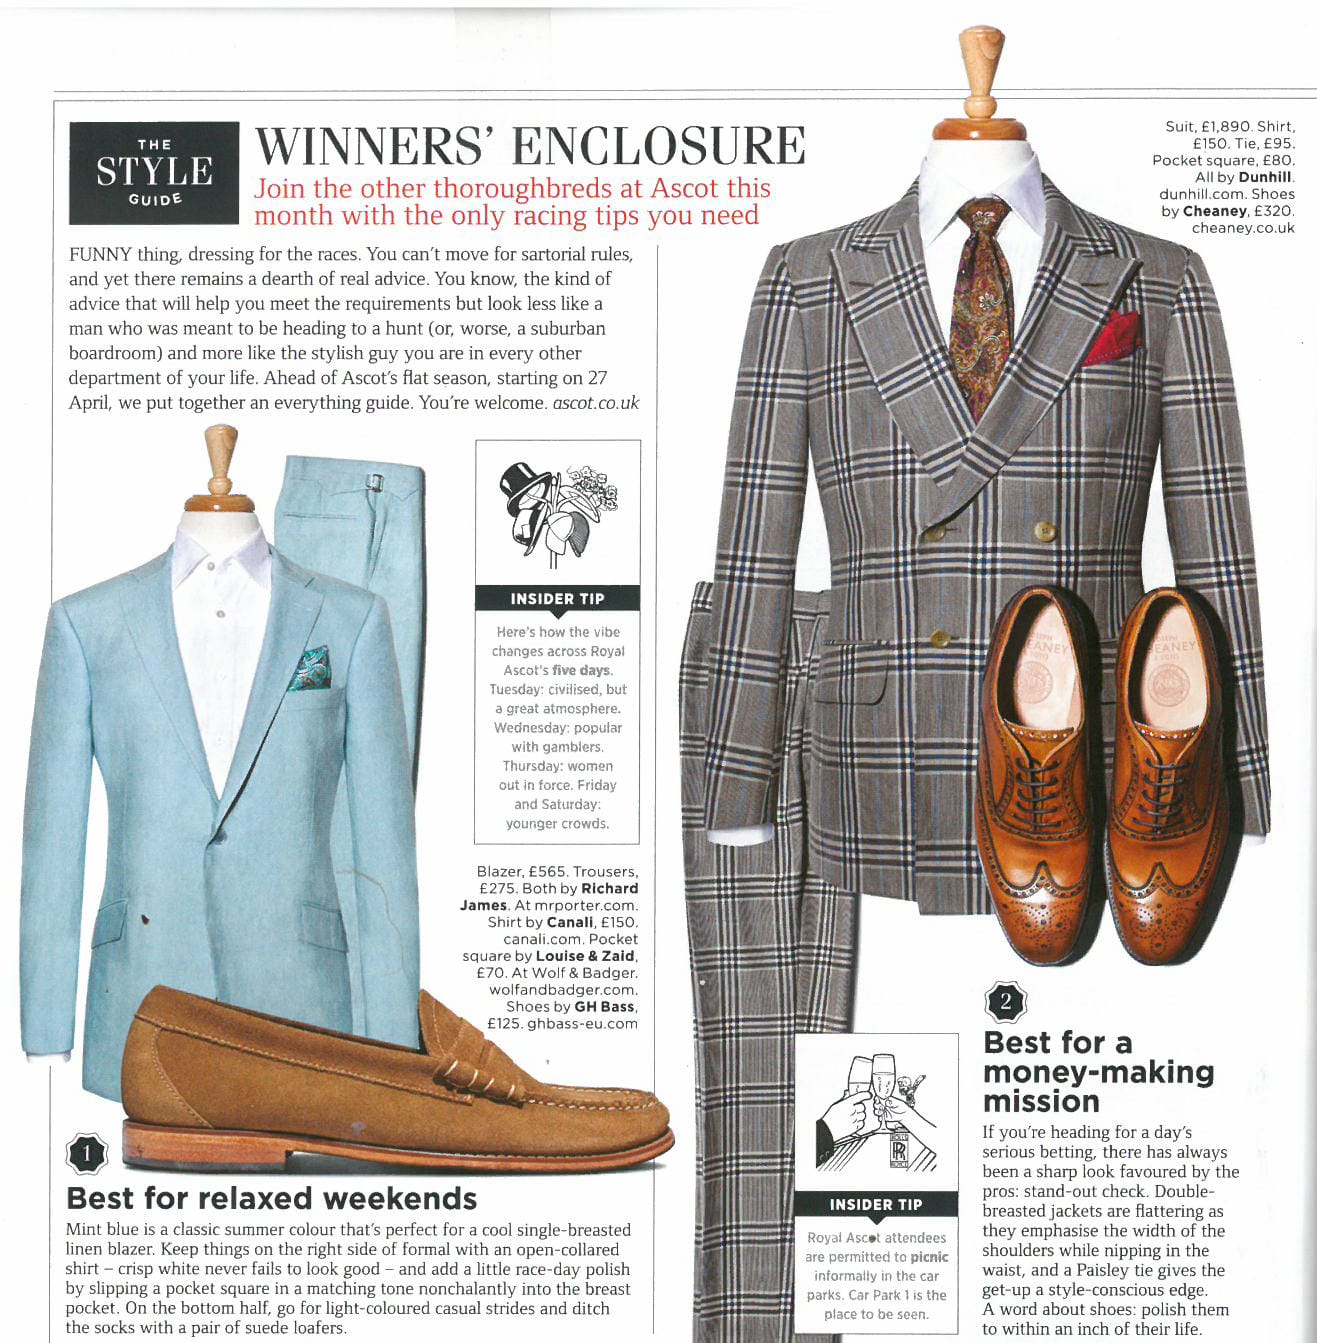 Cheaney Arthur Iii Brogue In Dark Leaf Calf Leather Featured In British Gq 39 S Style Guide The